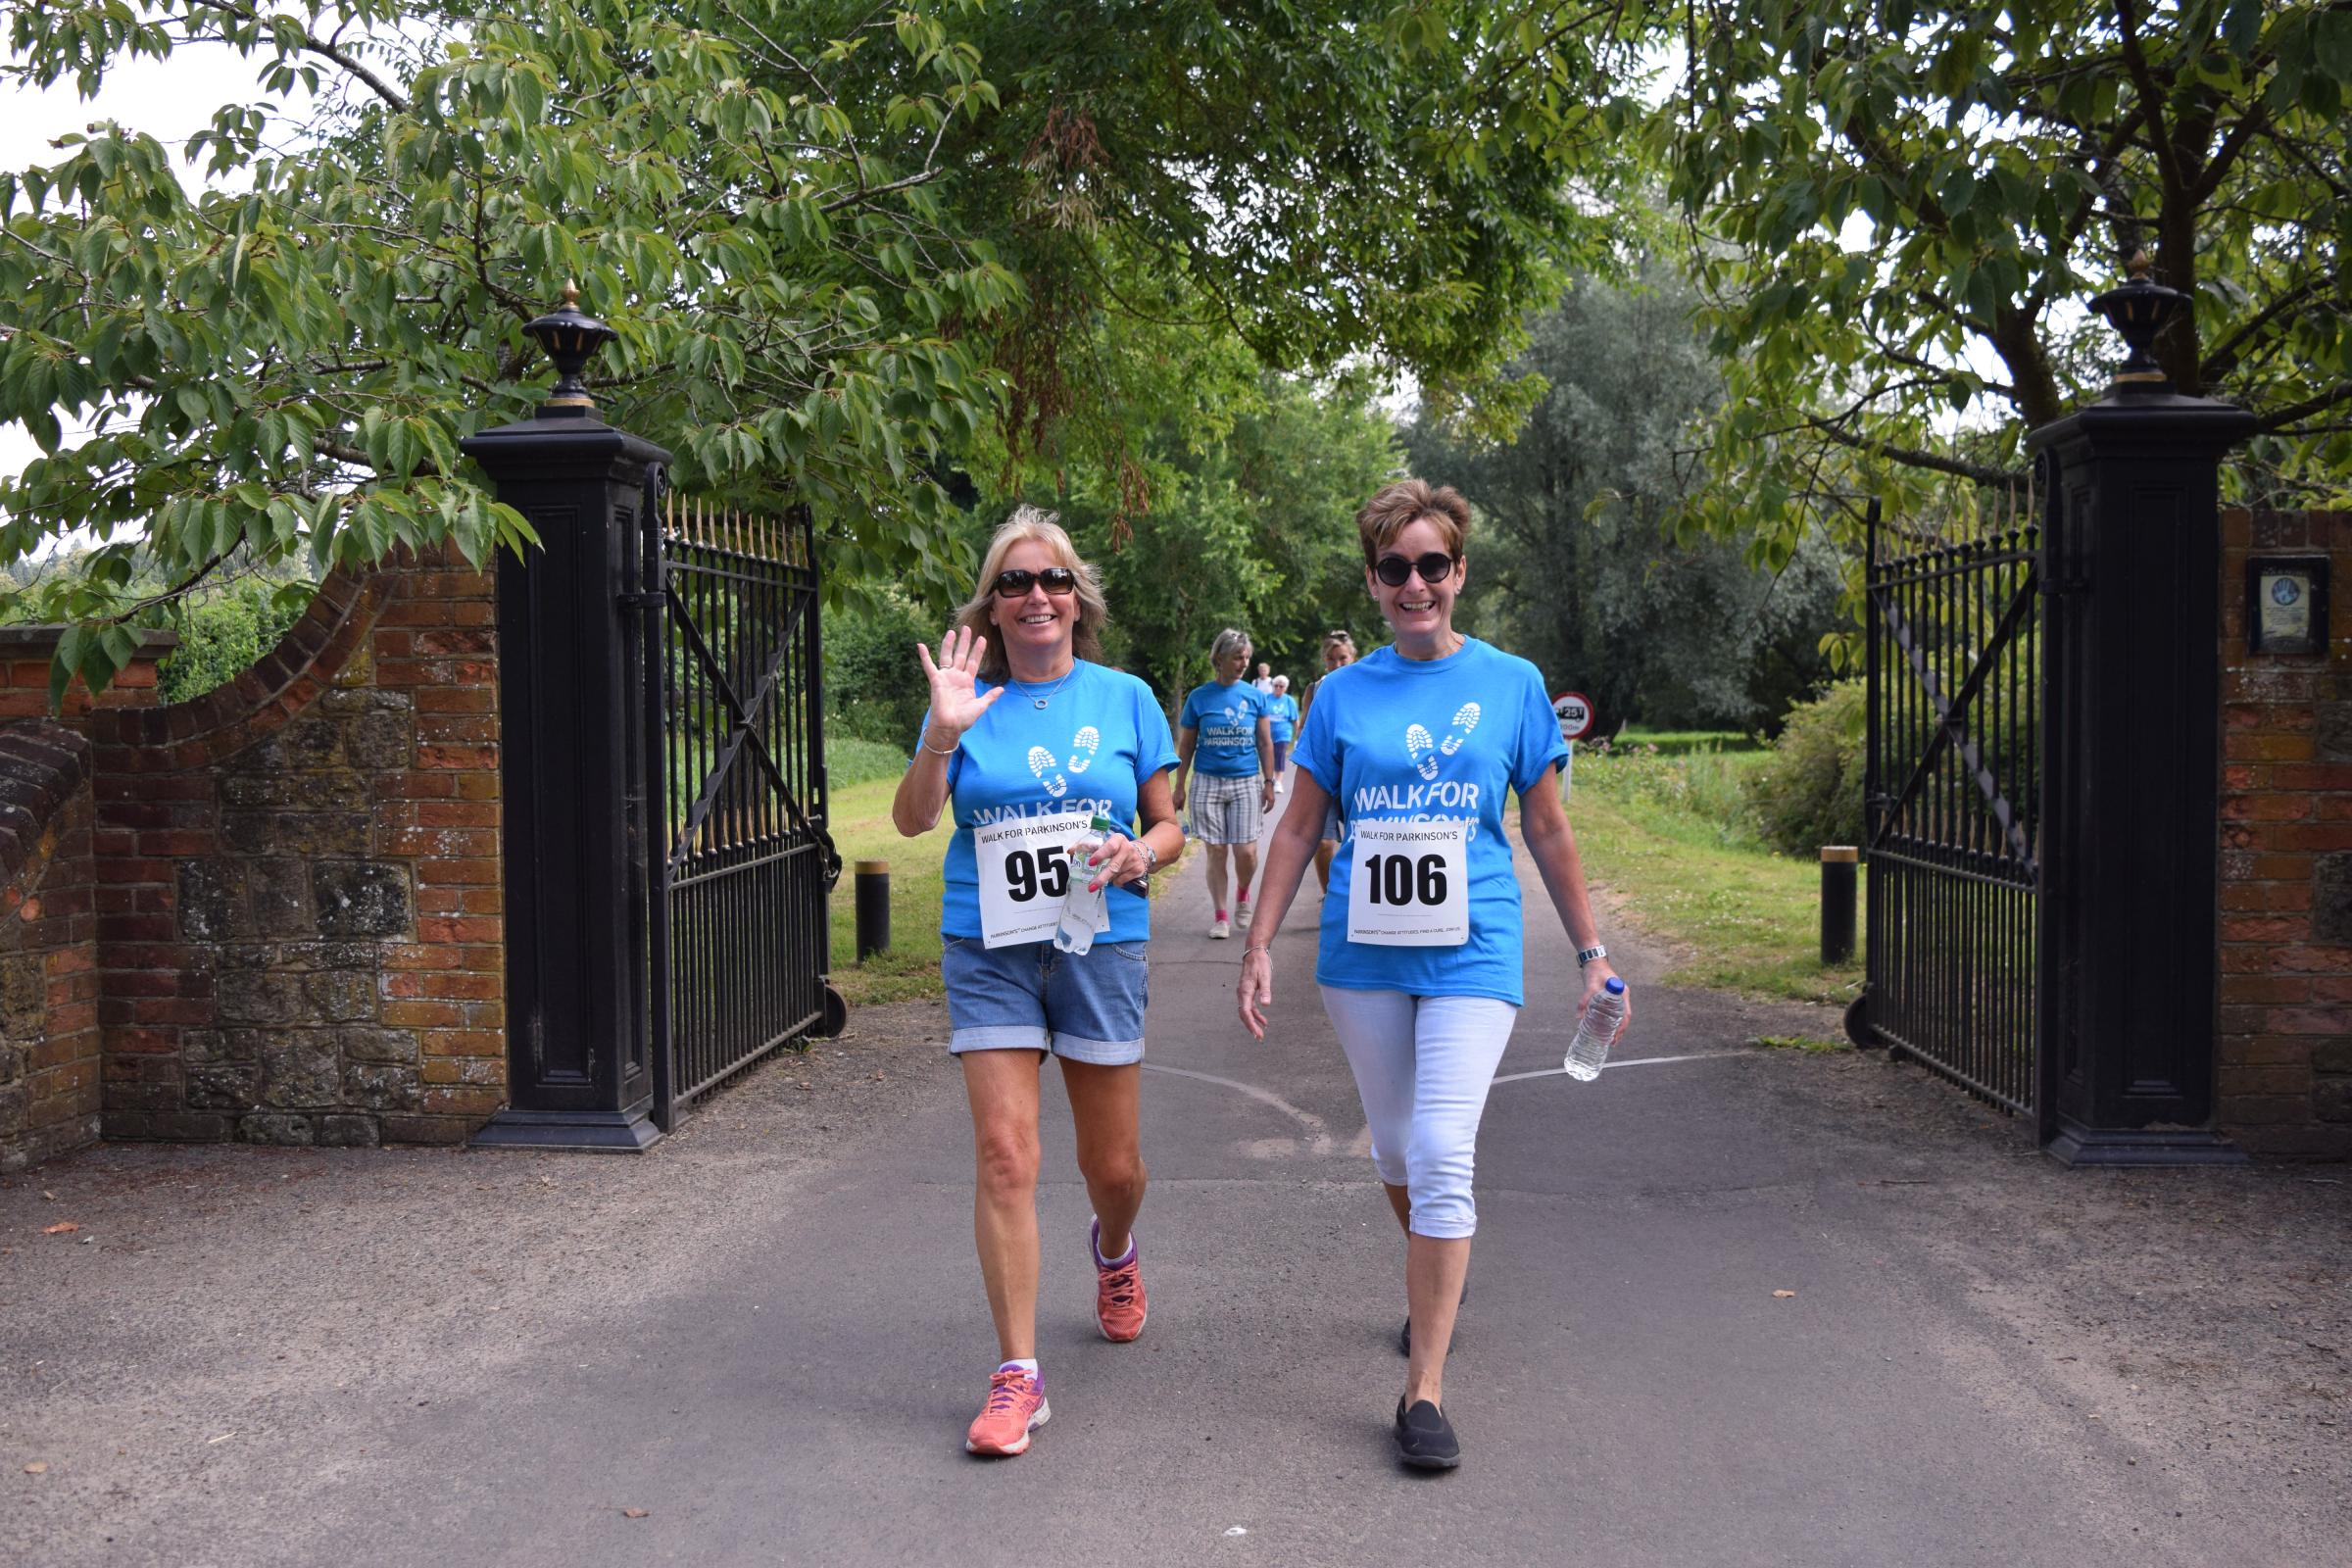 Walk for Parkinson's - Welford Park